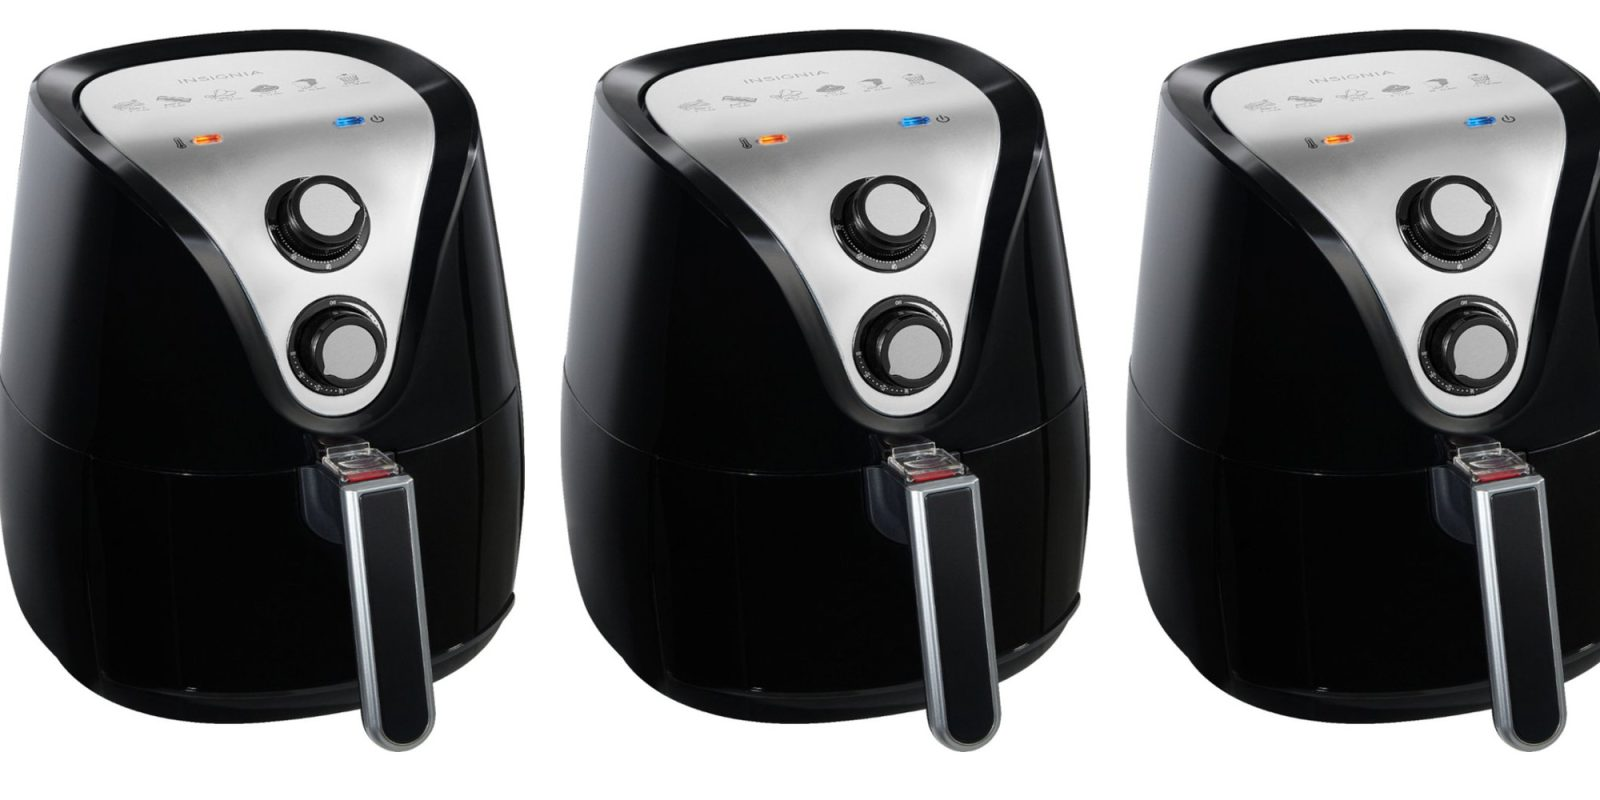 Today only, Best Buy will sell you a 3.4-quart Air Fryer at just $30 (Reg. $55+)